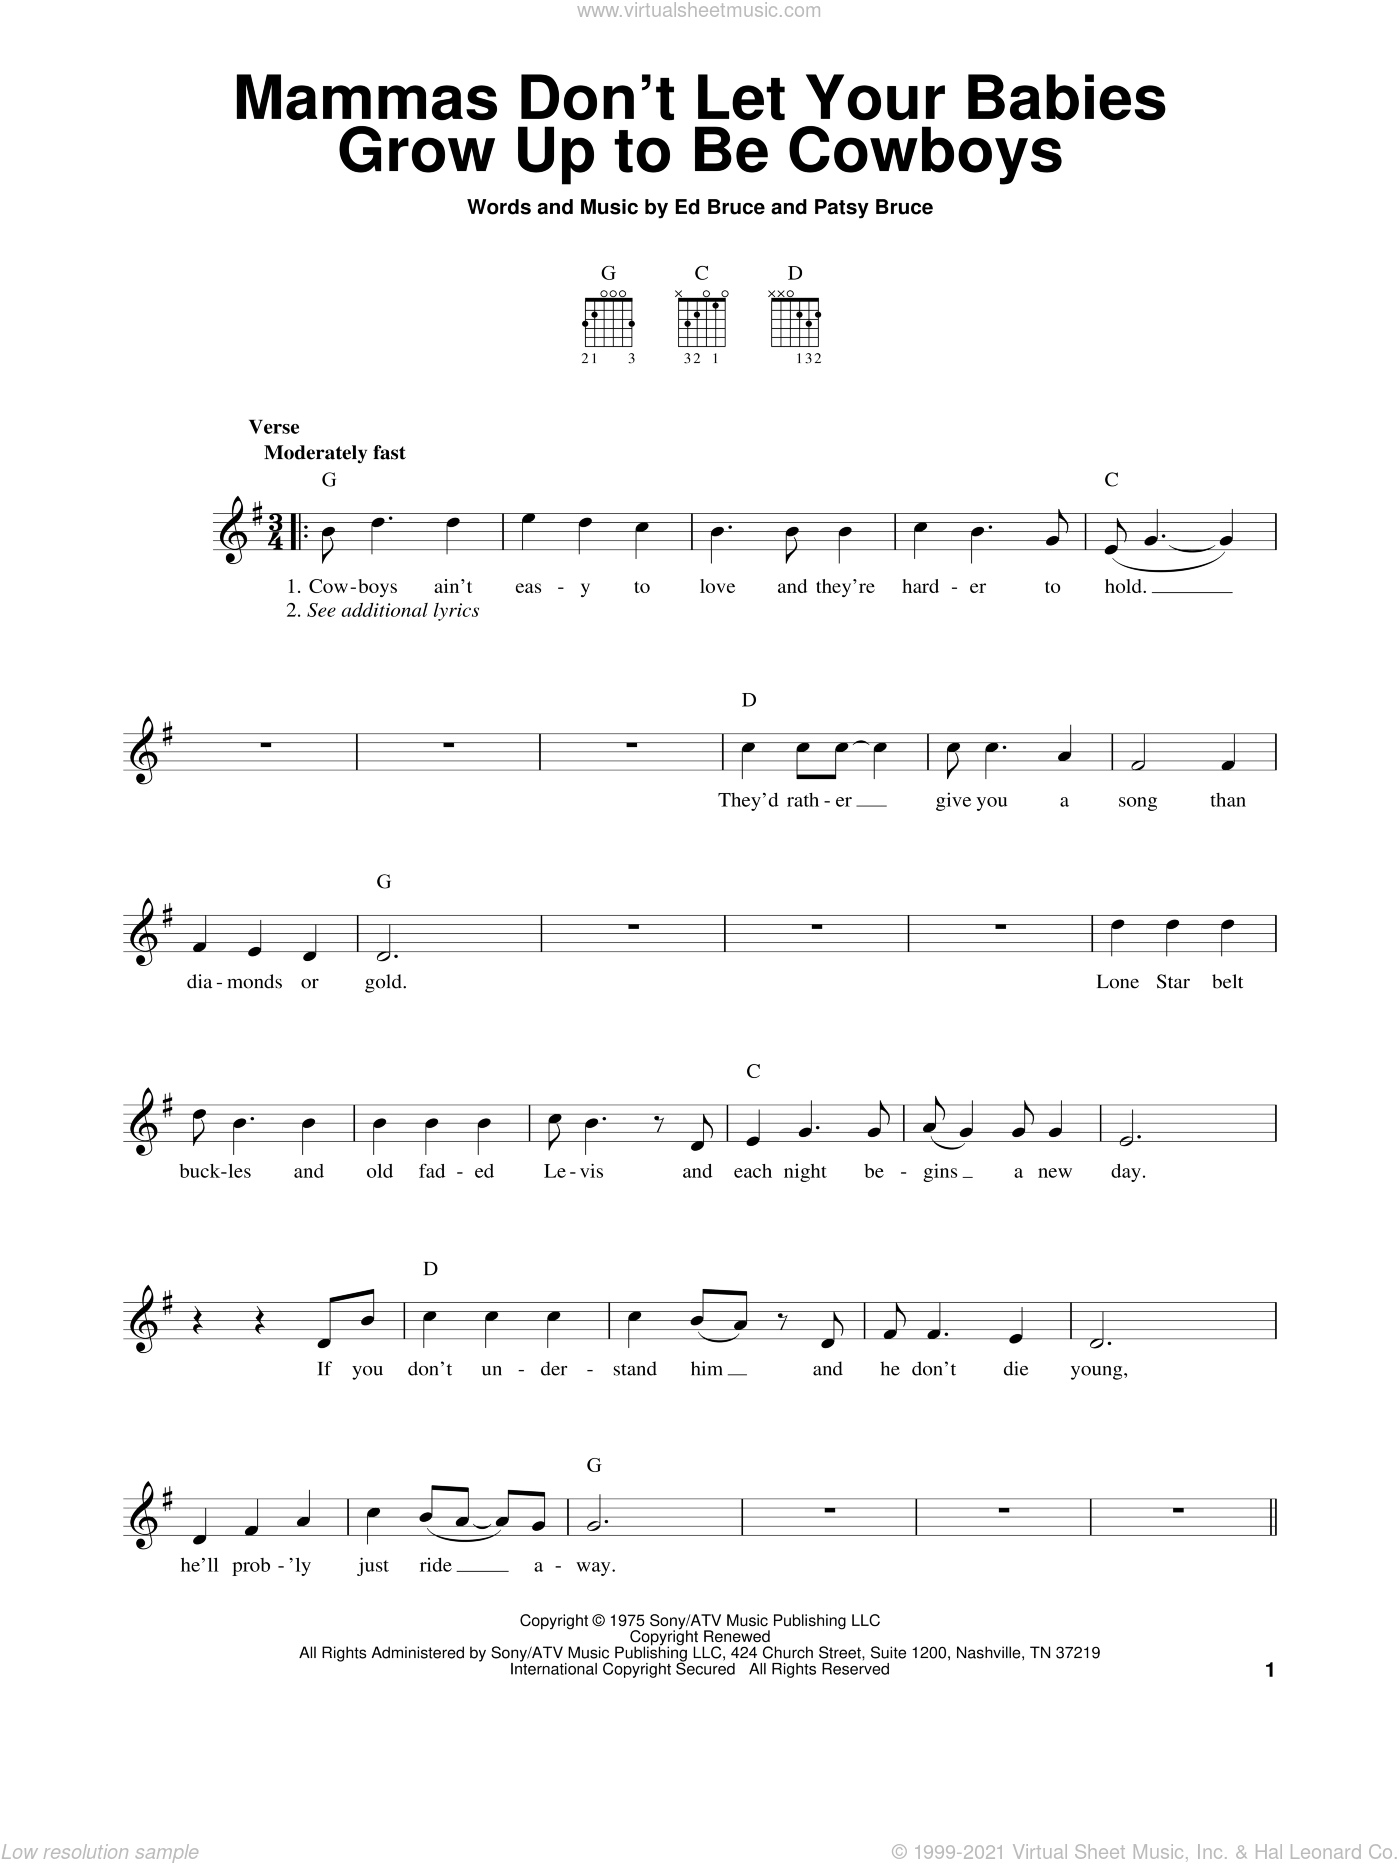 nelson mammas don 39 t let your babies grow up to be cowboys sheet music for guitar solo chords. Black Bedroom Furniture Sets. Home Design Ideas